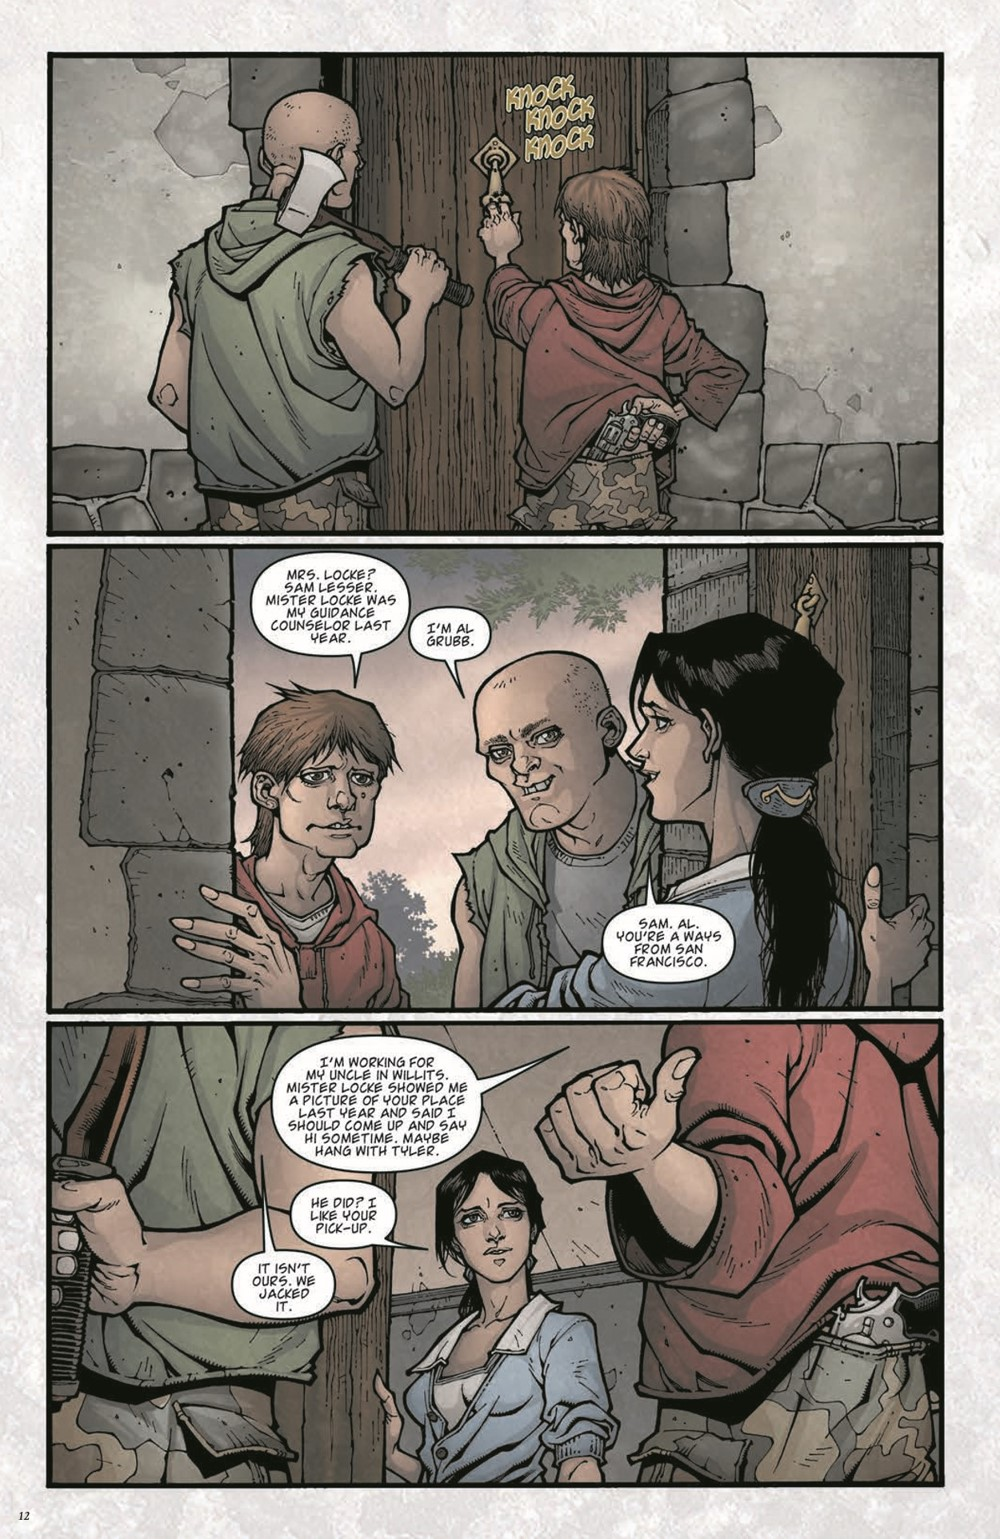 LnK-KeyhouseCompendium-pr-6 ComicList Previews: LOCKE AND KEY KEYHOUSE COMPENDIUM HARDCOVER COLLECTION